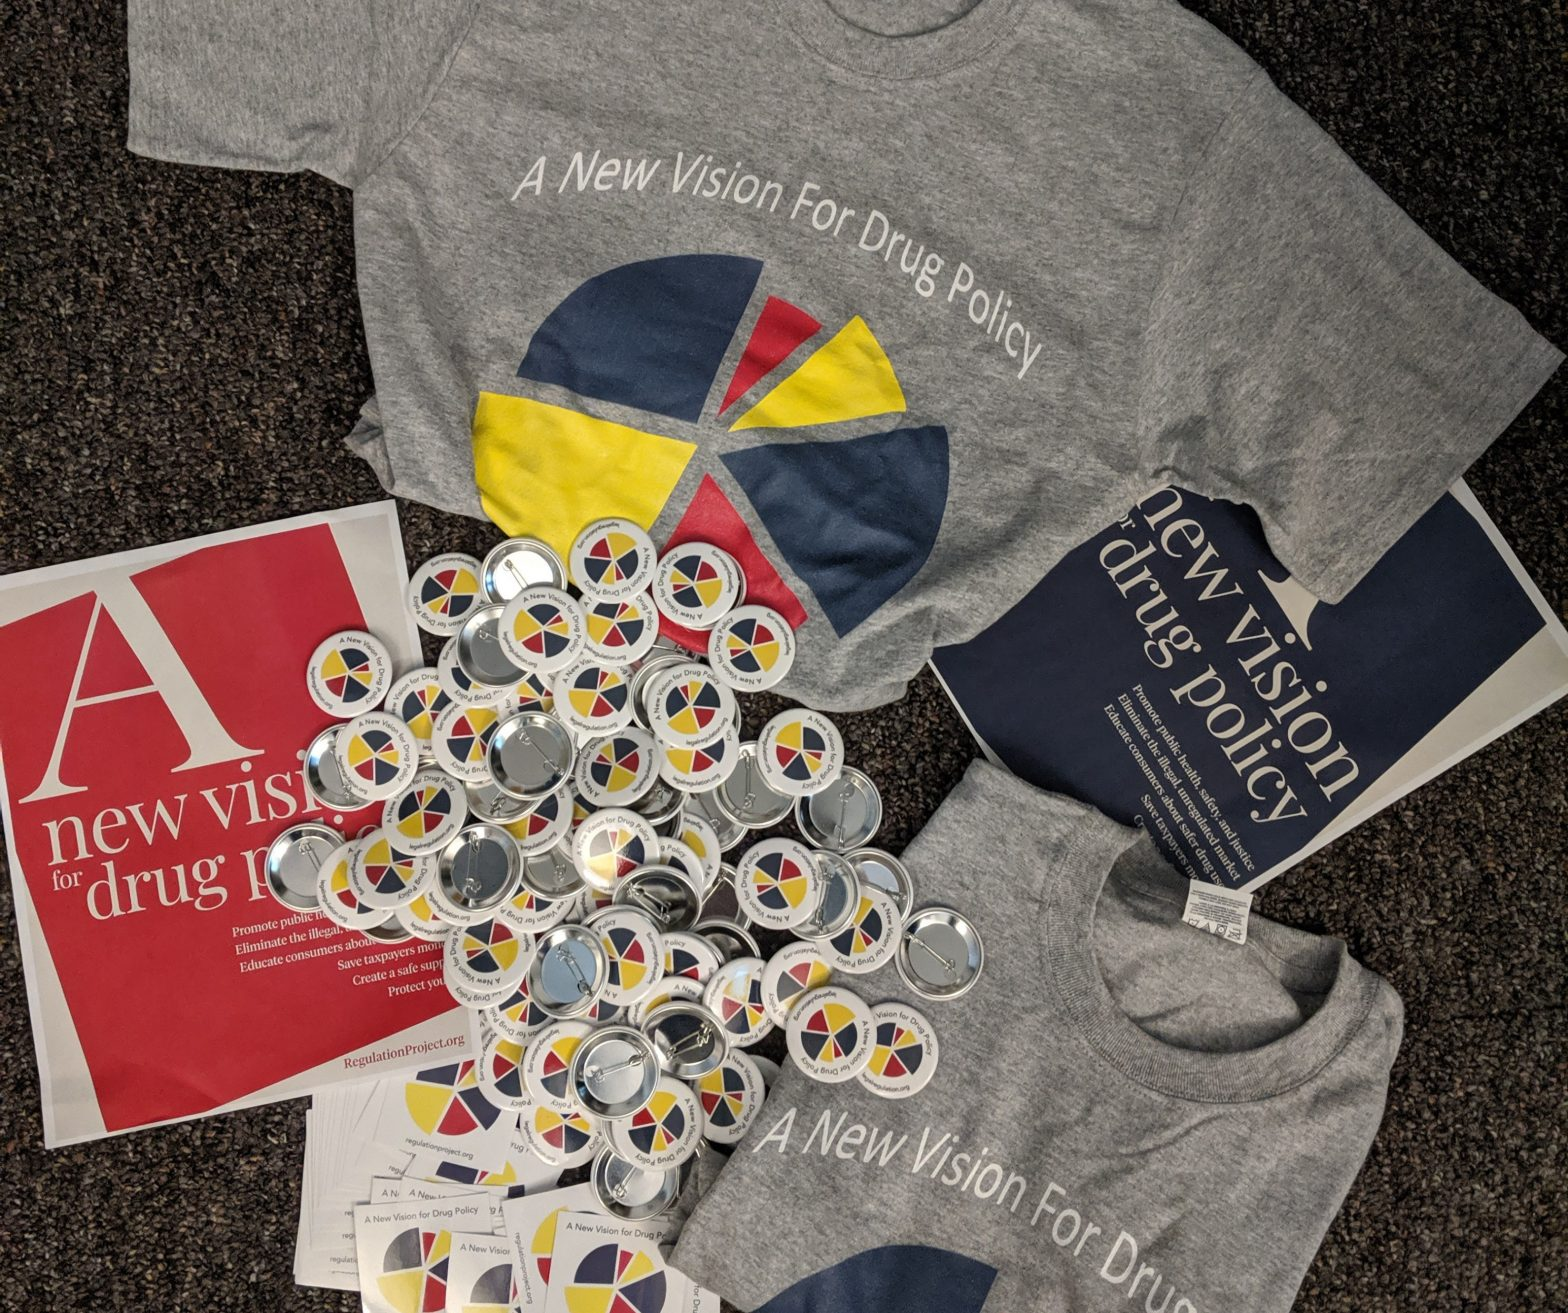 T-shirt, stickers, buttons arranged on the floor